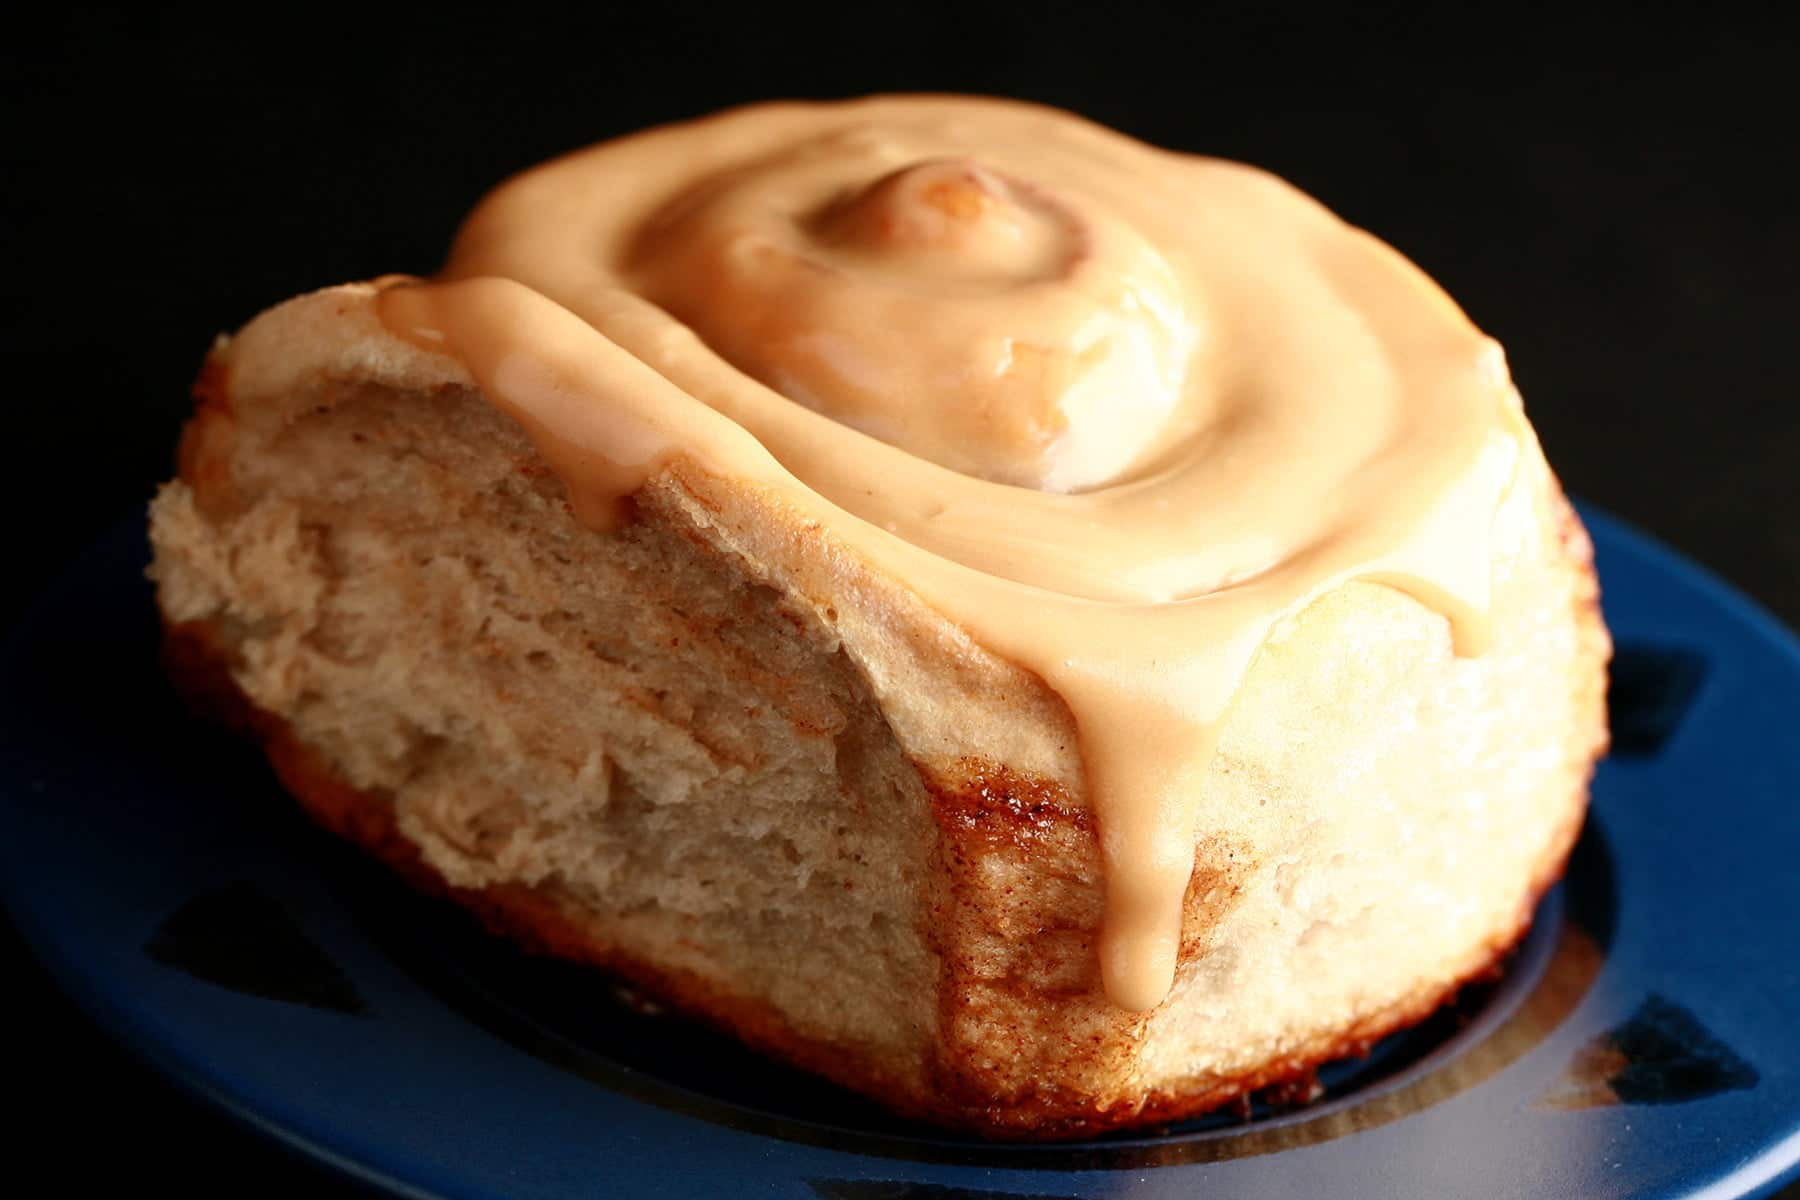 A close up view of a chai cinnamon roll, glazed with a light tan, tea flavoured frosting.